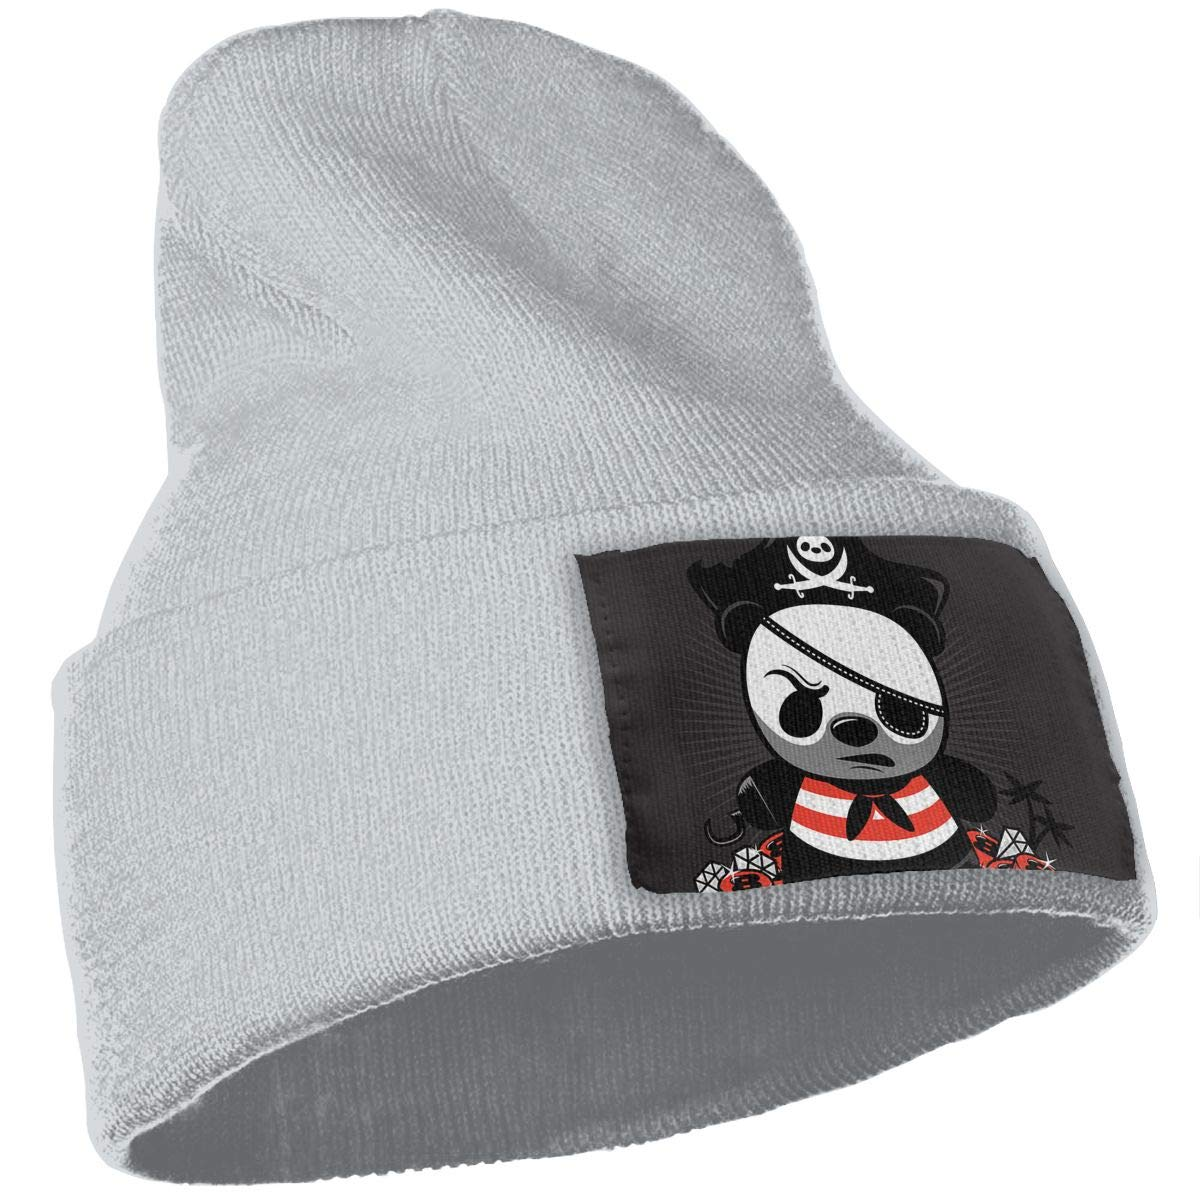 JimHappy Pirate Panda Hat for Men and Women Winter Warm Hats Knit Slouchy Thick Skull Cap Black